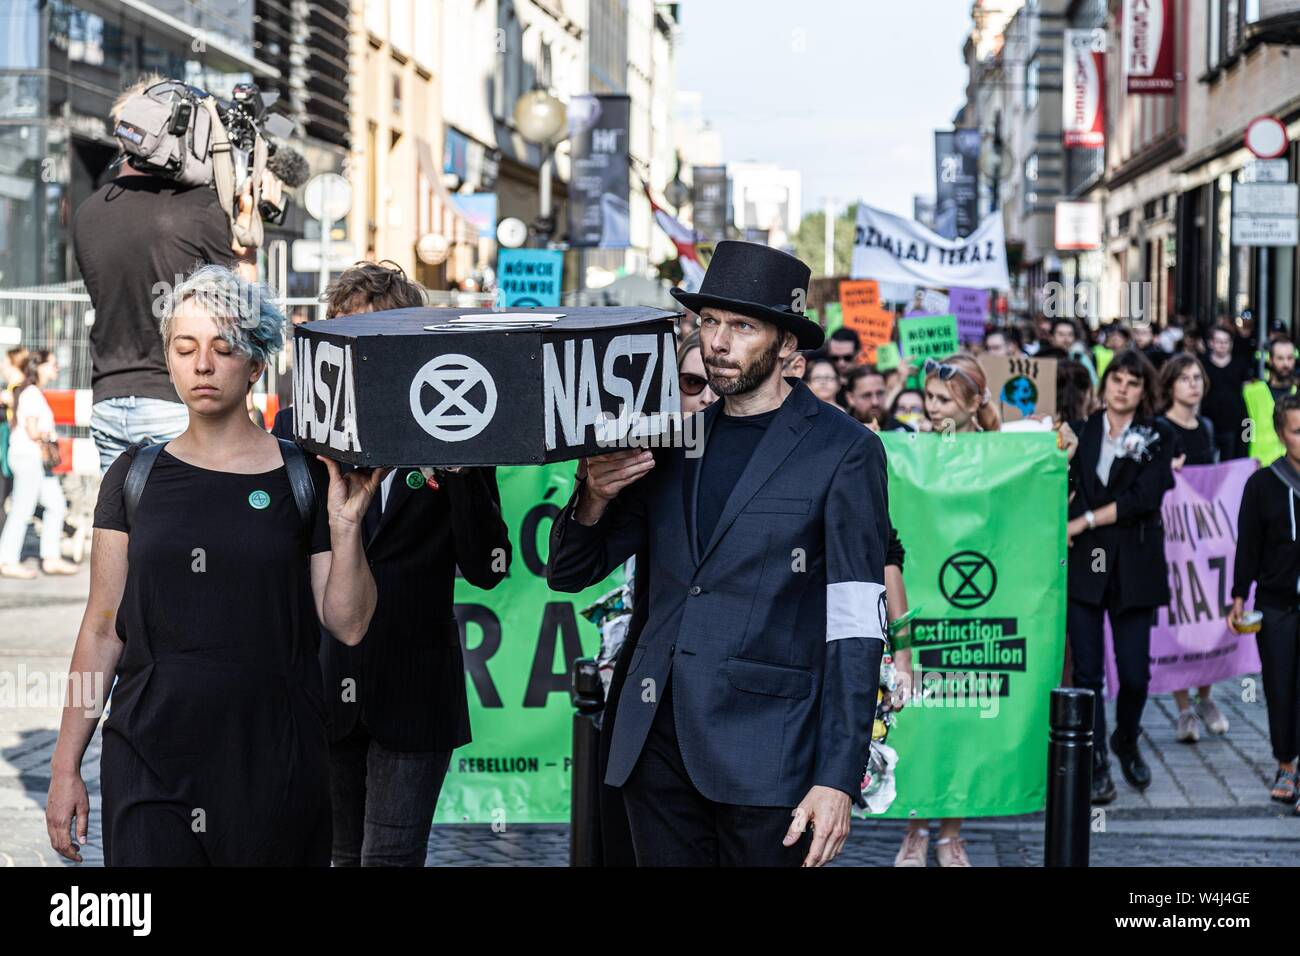 Wroclaw, Poland. 23rd July, 2019. 23 July 2019 Wroclaw Poland. Extinction Rebellion in Wroclaw. The funeral procession of the future and the past passed through the city in a protest against climate change. Credit: Krzysztof Kaniewski/ZUMA Wire/Alamy Live News Stock Photo